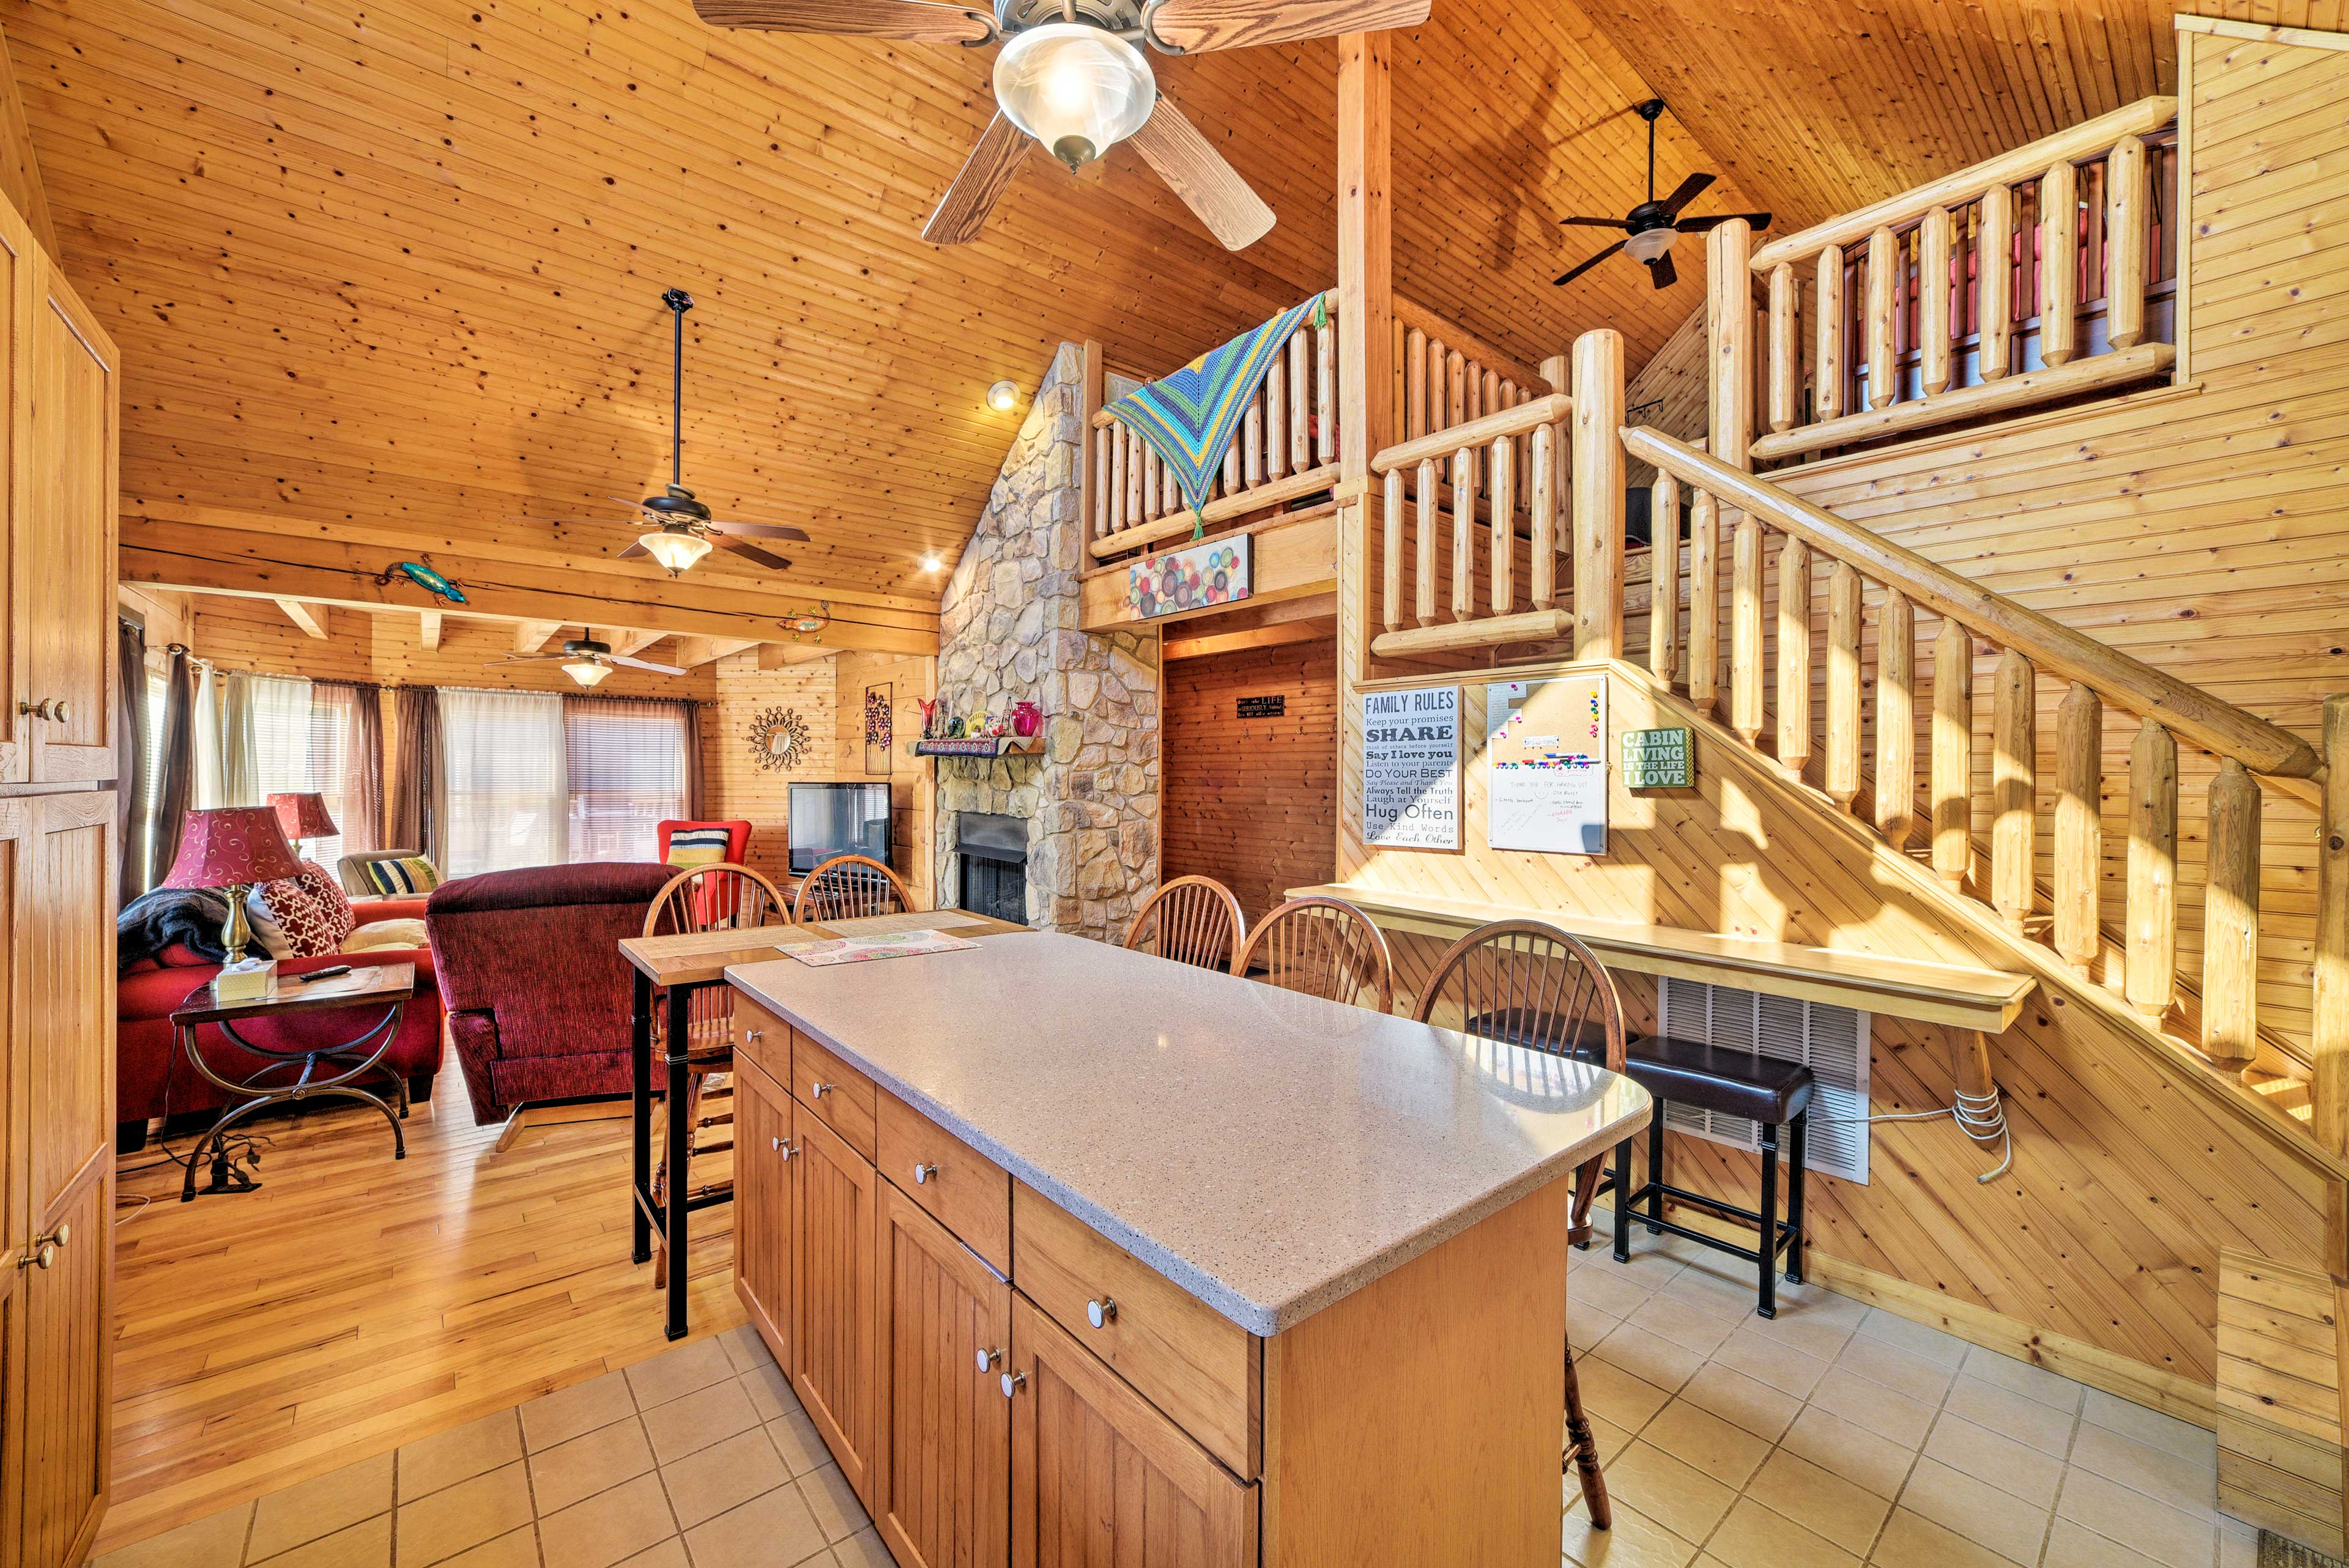 Welcome home to this 1-bedroom, 1-bathroom cabin in the hills of Luray.